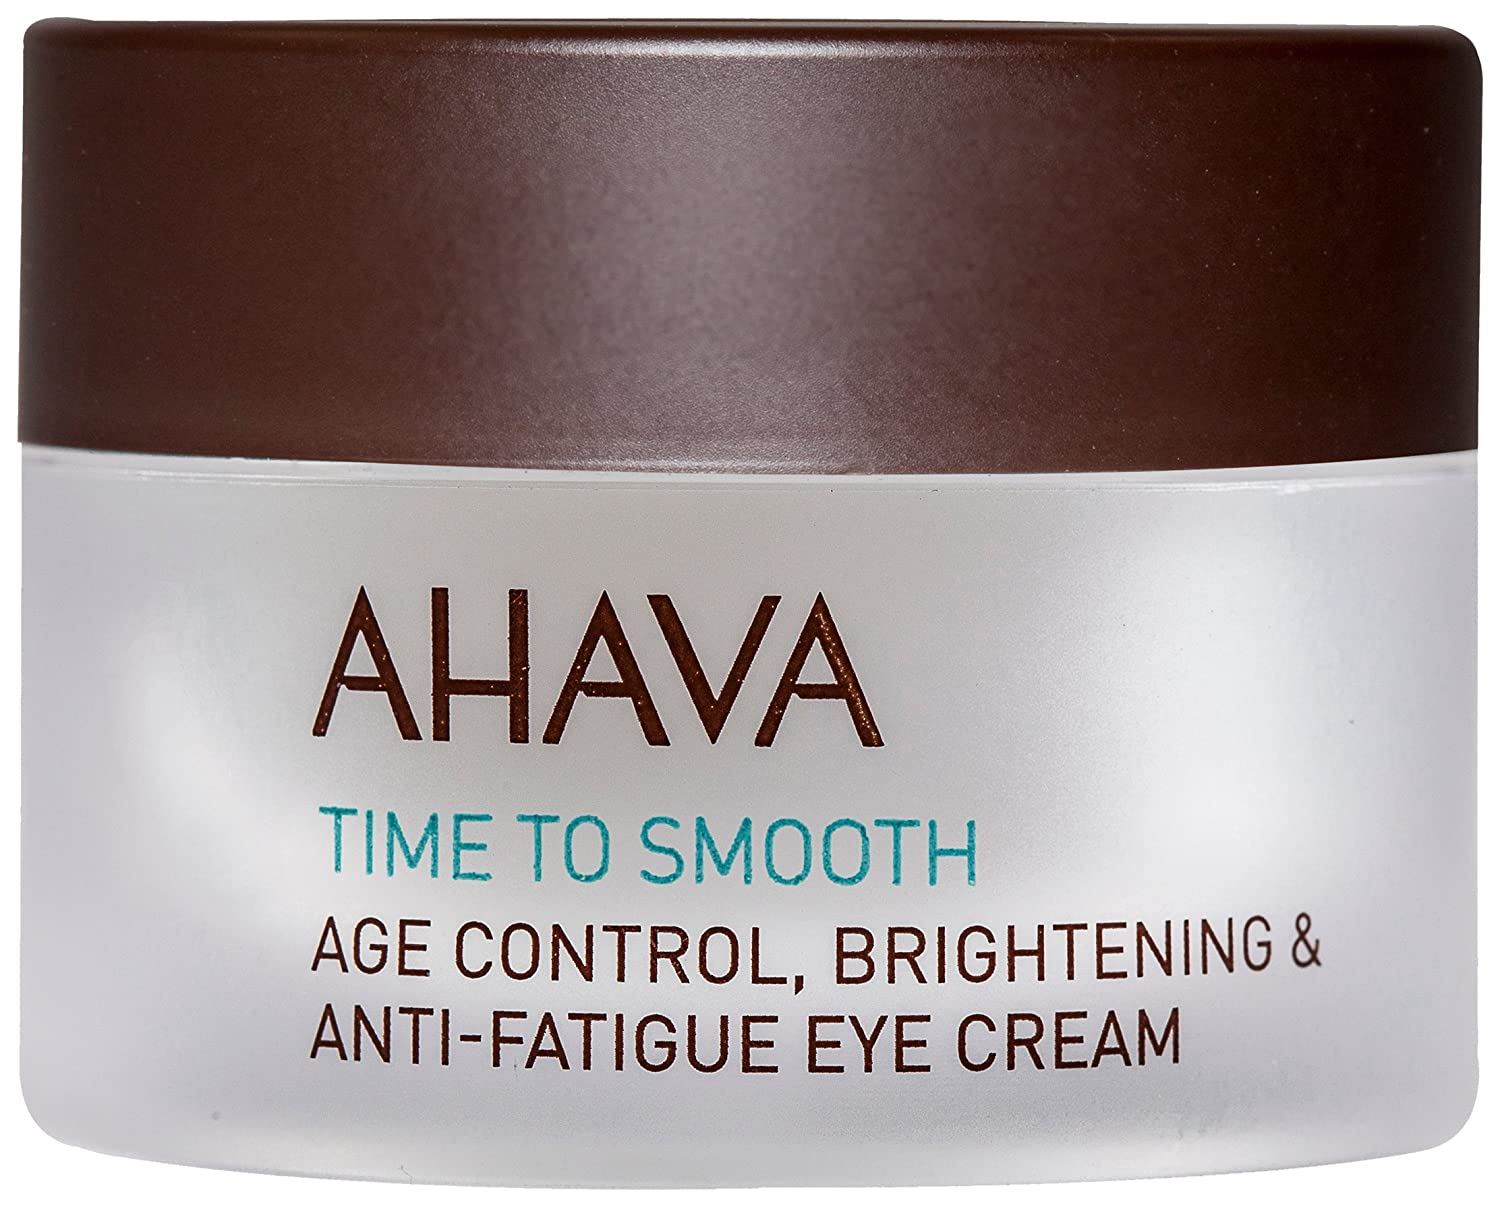 AHAVA Age Control Brightening & Anti-Fatigue, Augencreme, 15 ml 83915166